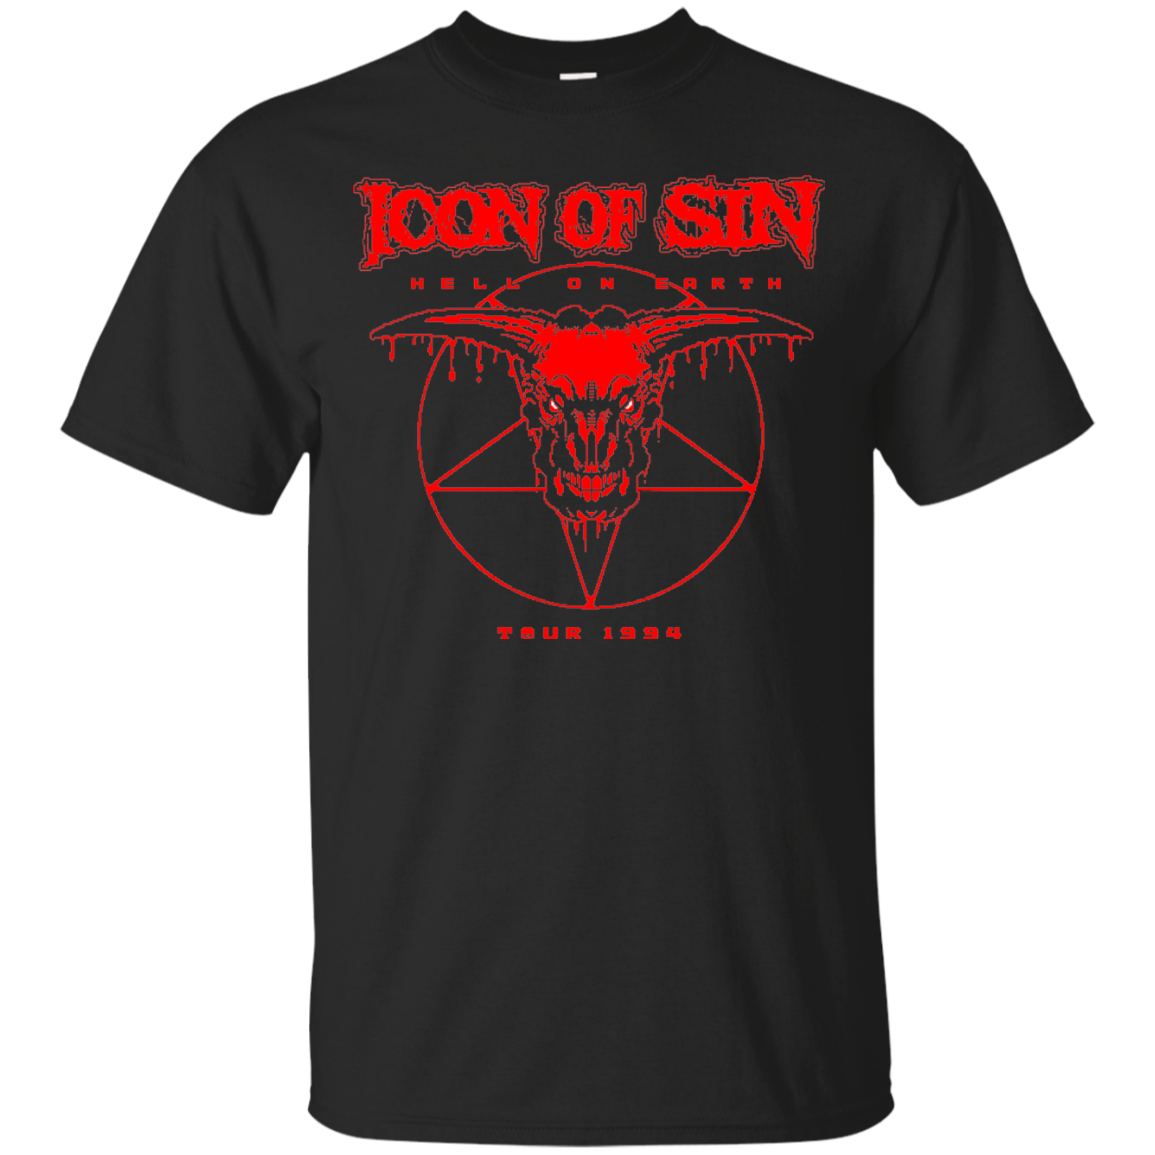 icon of sin t shirt pop up tee icon of sin t shirt